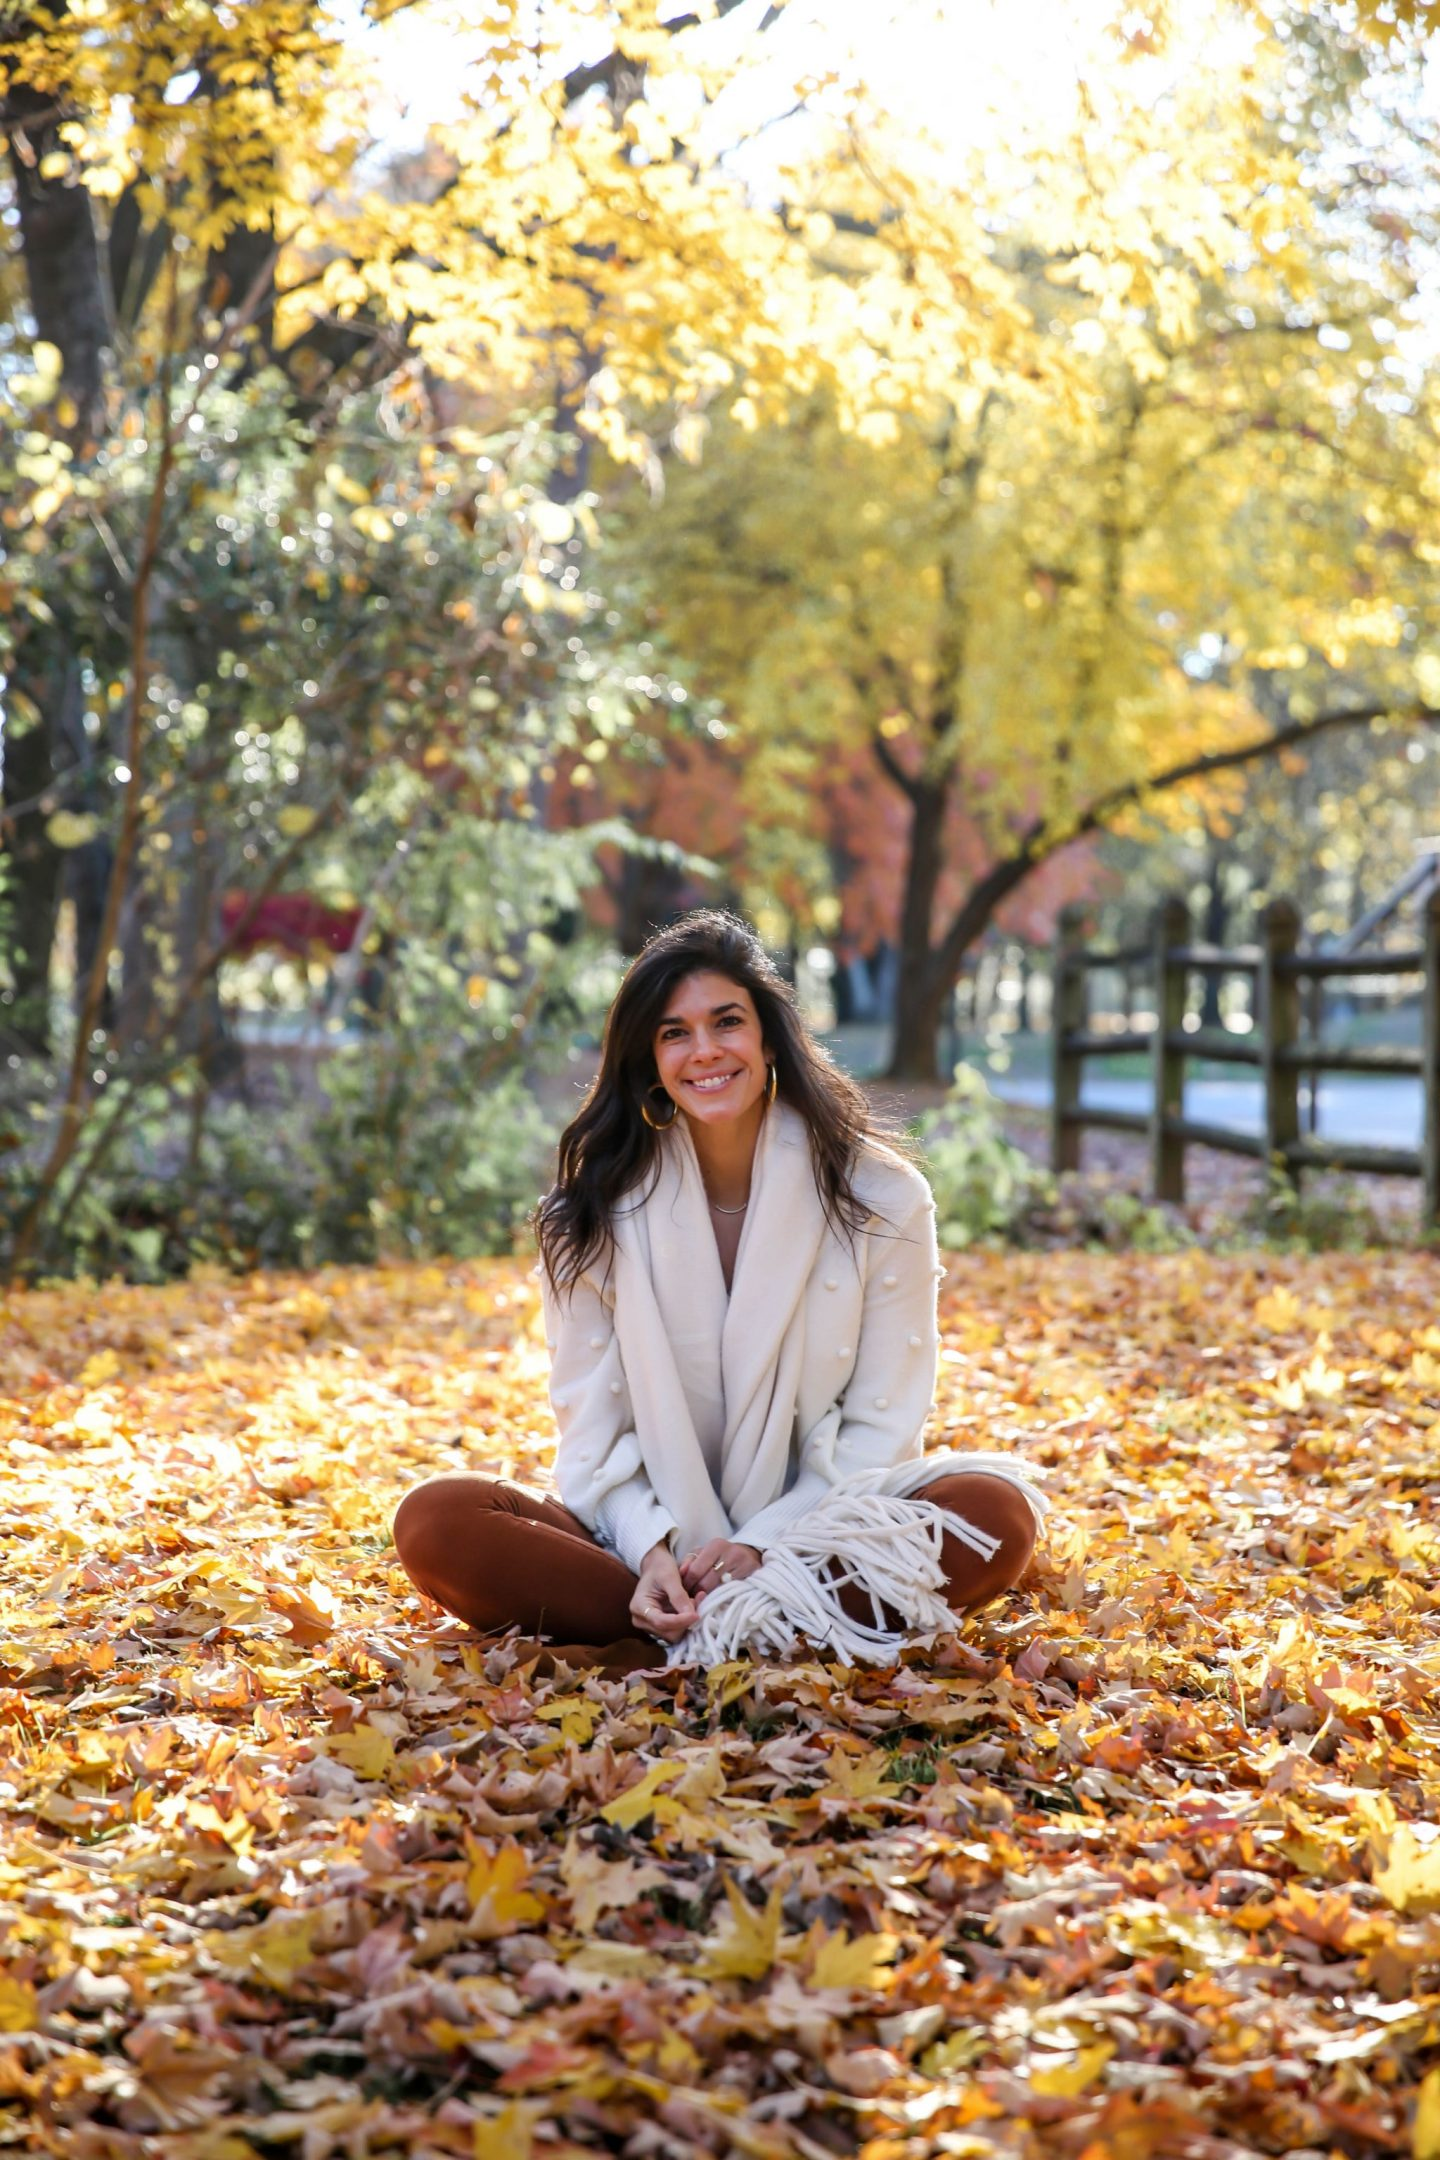 autumn fashion - casual chic style - Lauren Schwaiger Blog